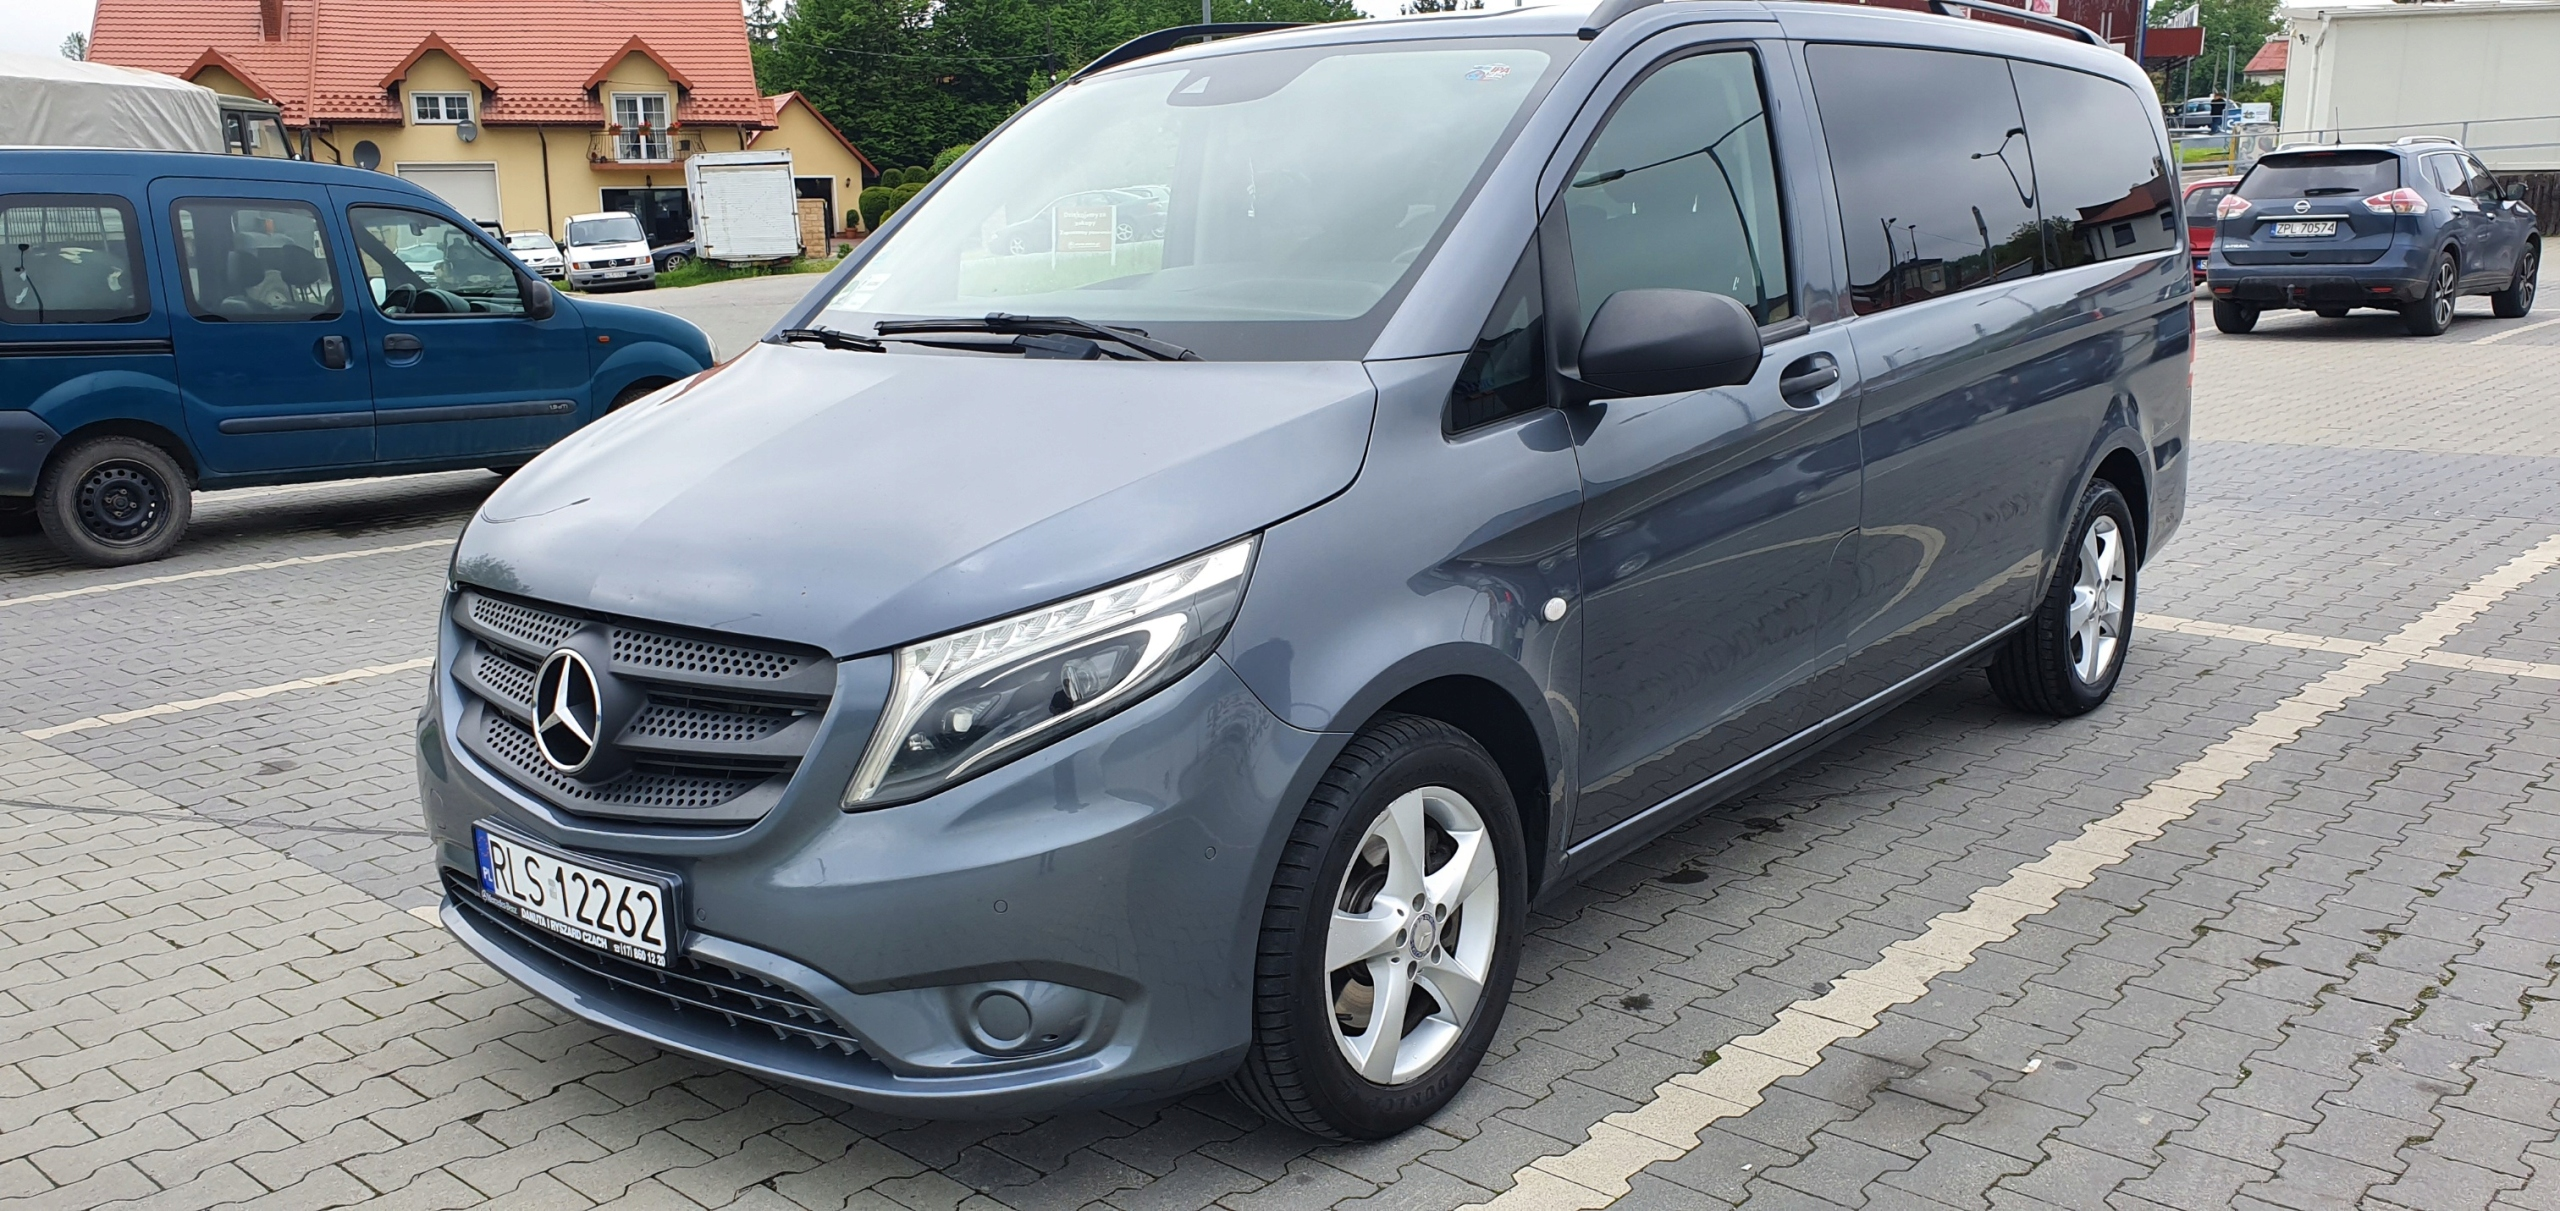 Mercedes Vito 2.1 CDI 119 Tourer Long 2014 190KM